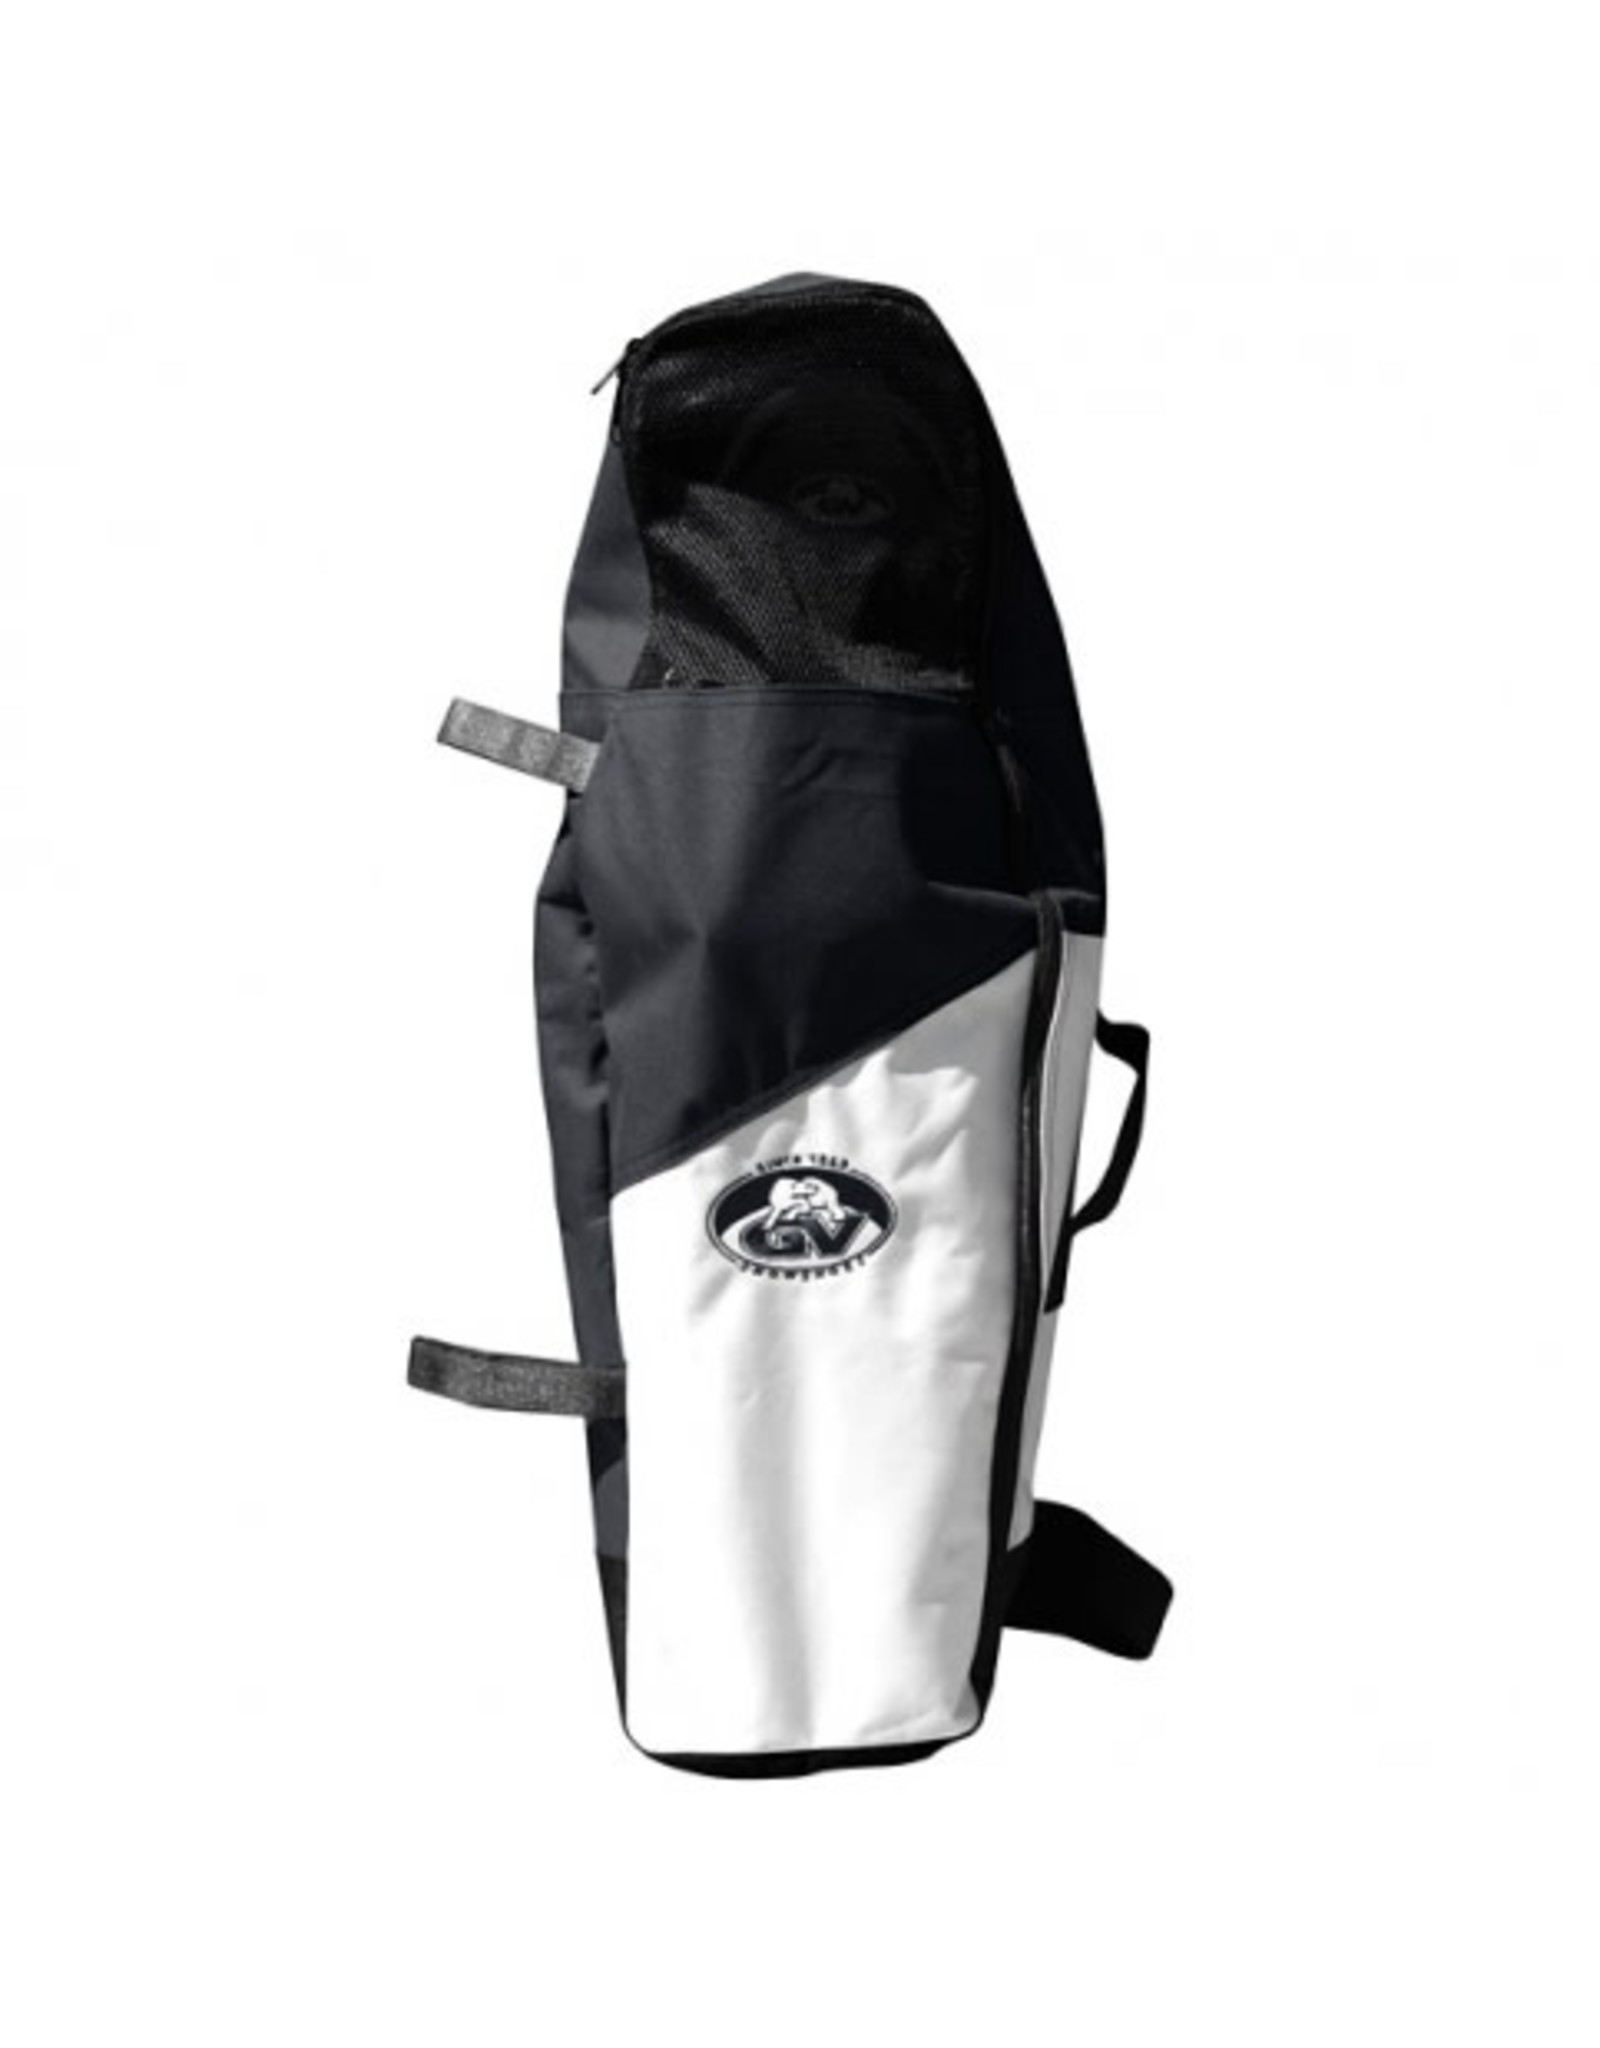 GV GV TRANSPORT BAG (3 sizes available)